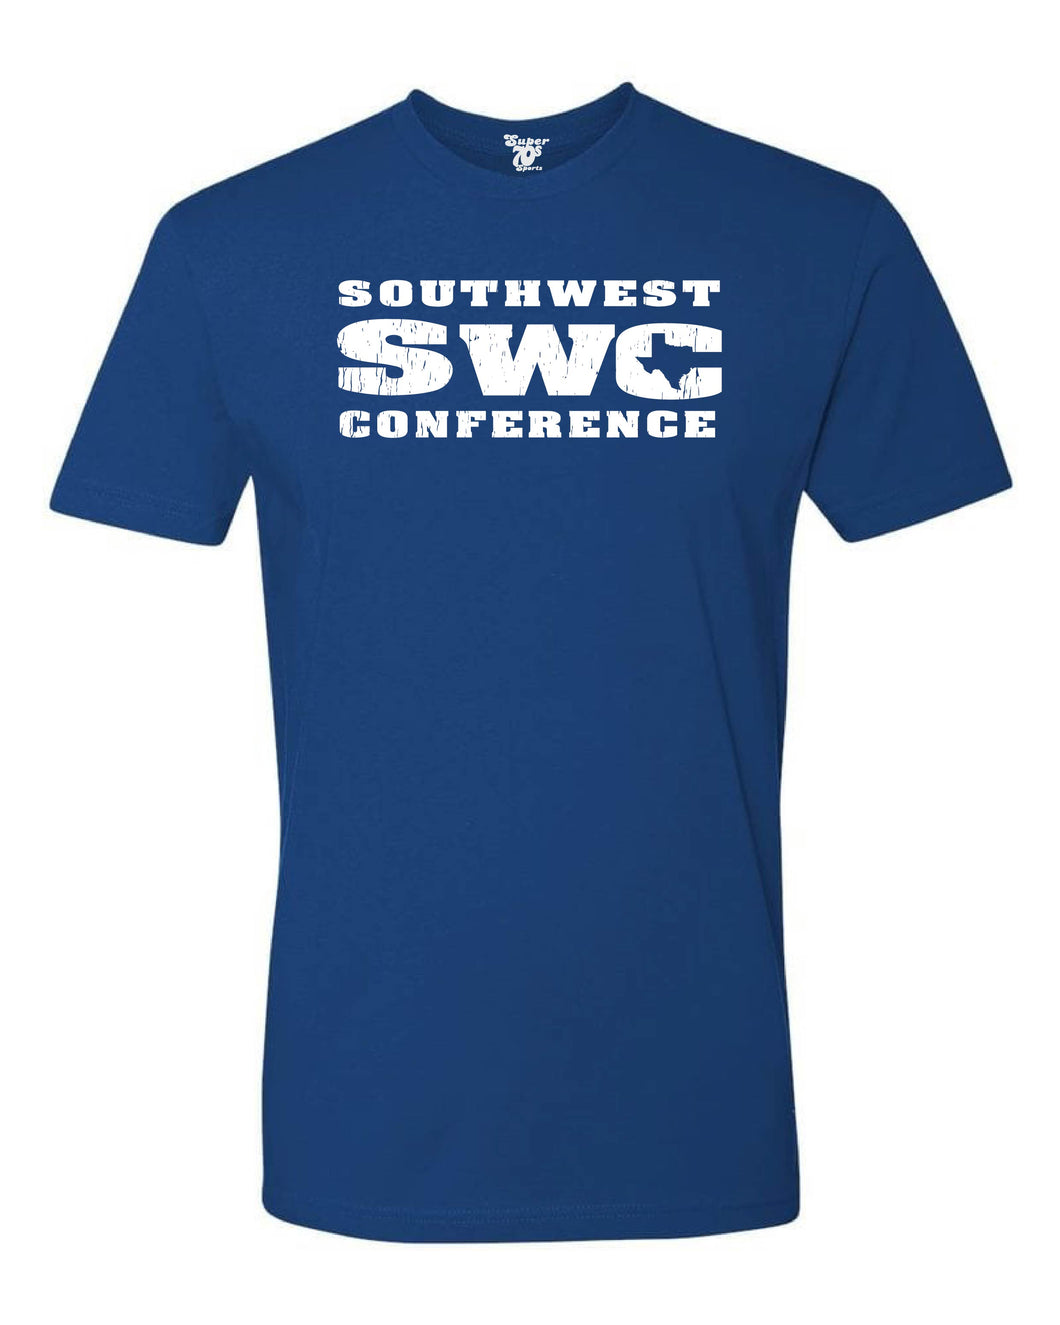 Southwest Conference Royal Tee